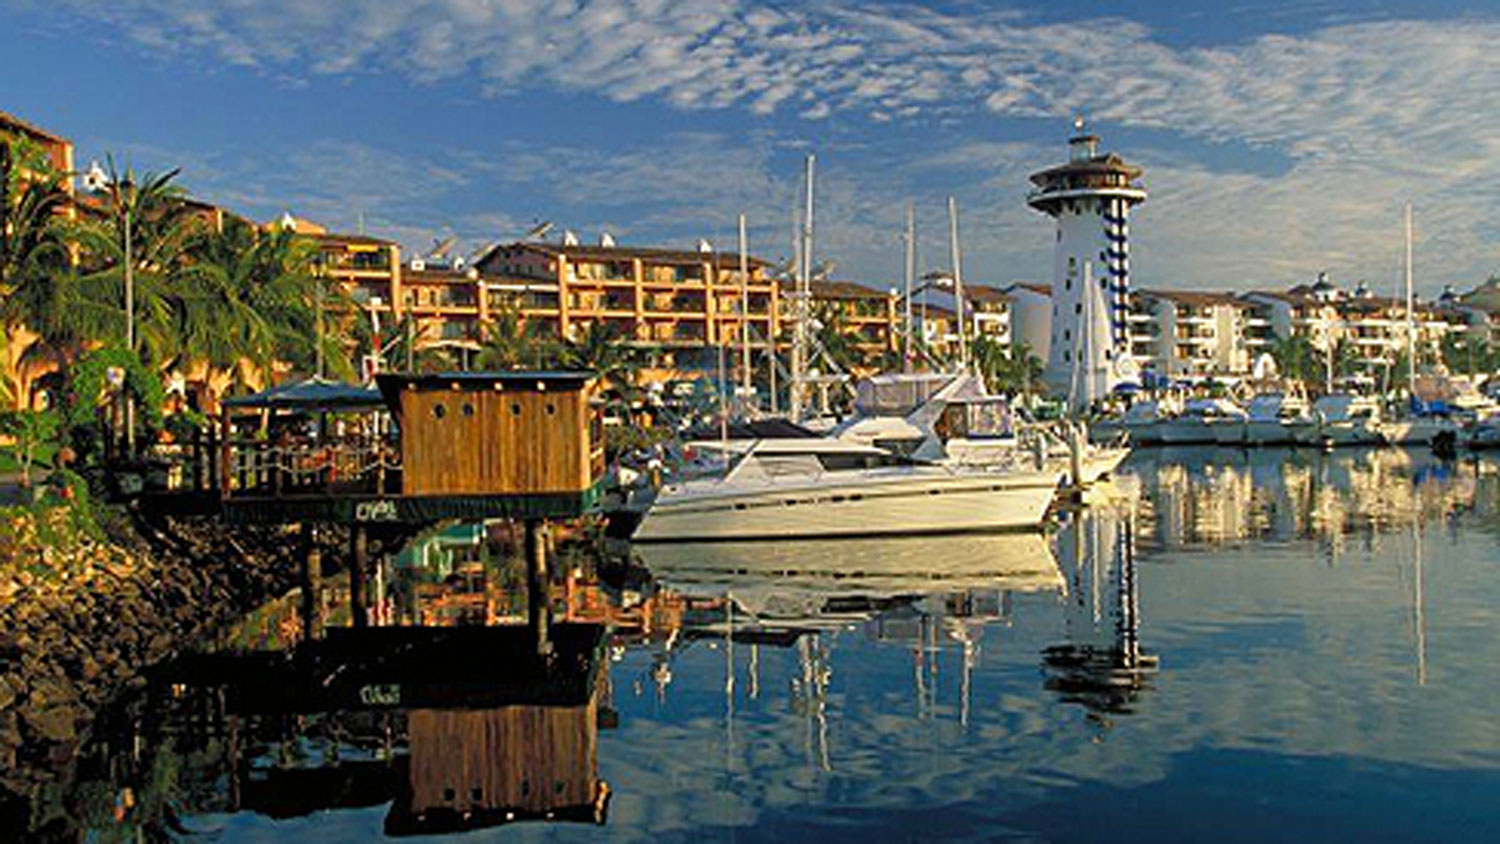 marina-vallarta-Real-estate-group